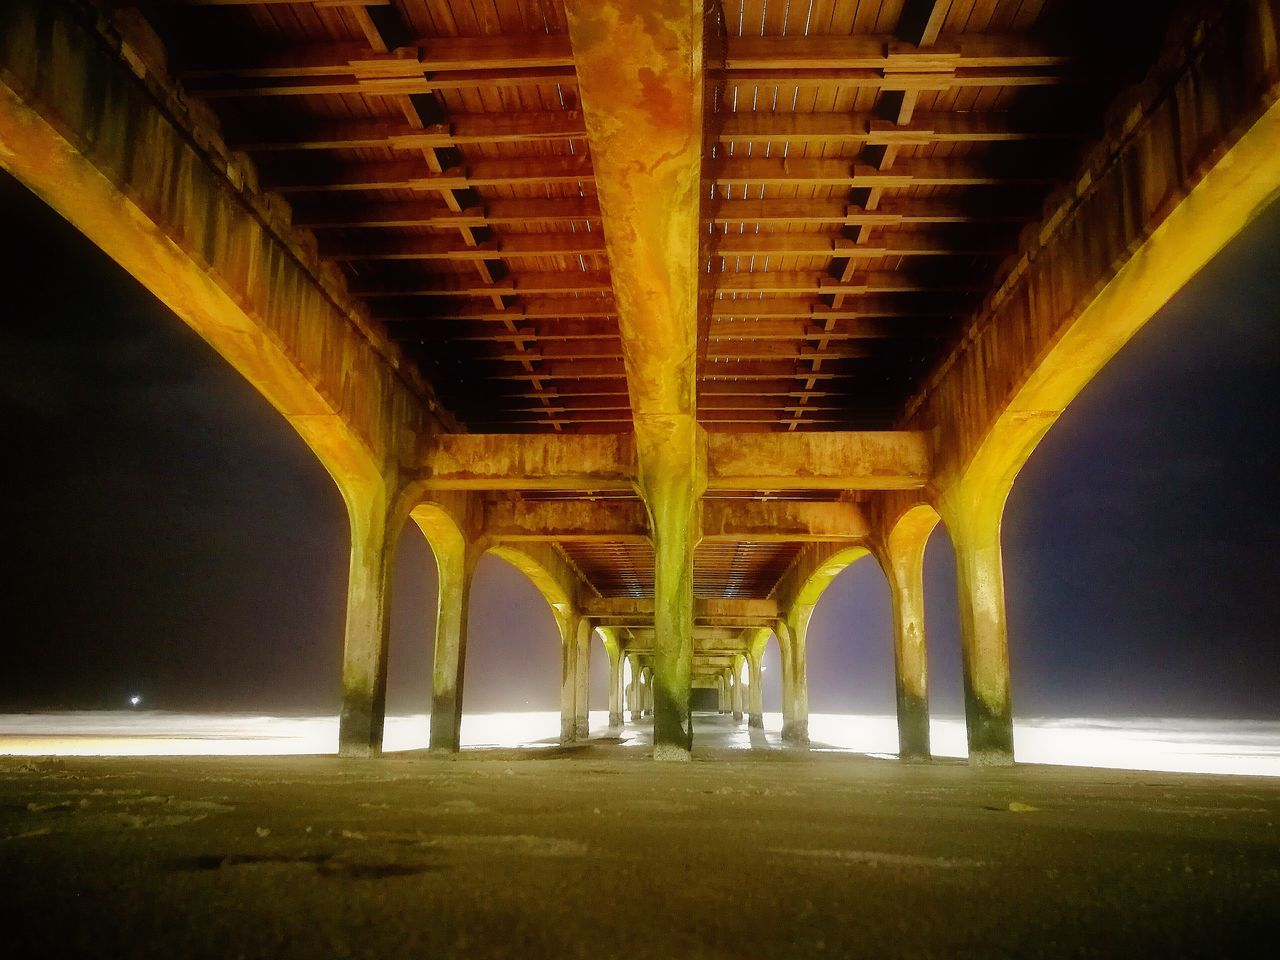 bridge - man made structure, architecture, underneath, below, night, connection, built structure, outdoors, no people, water, nature